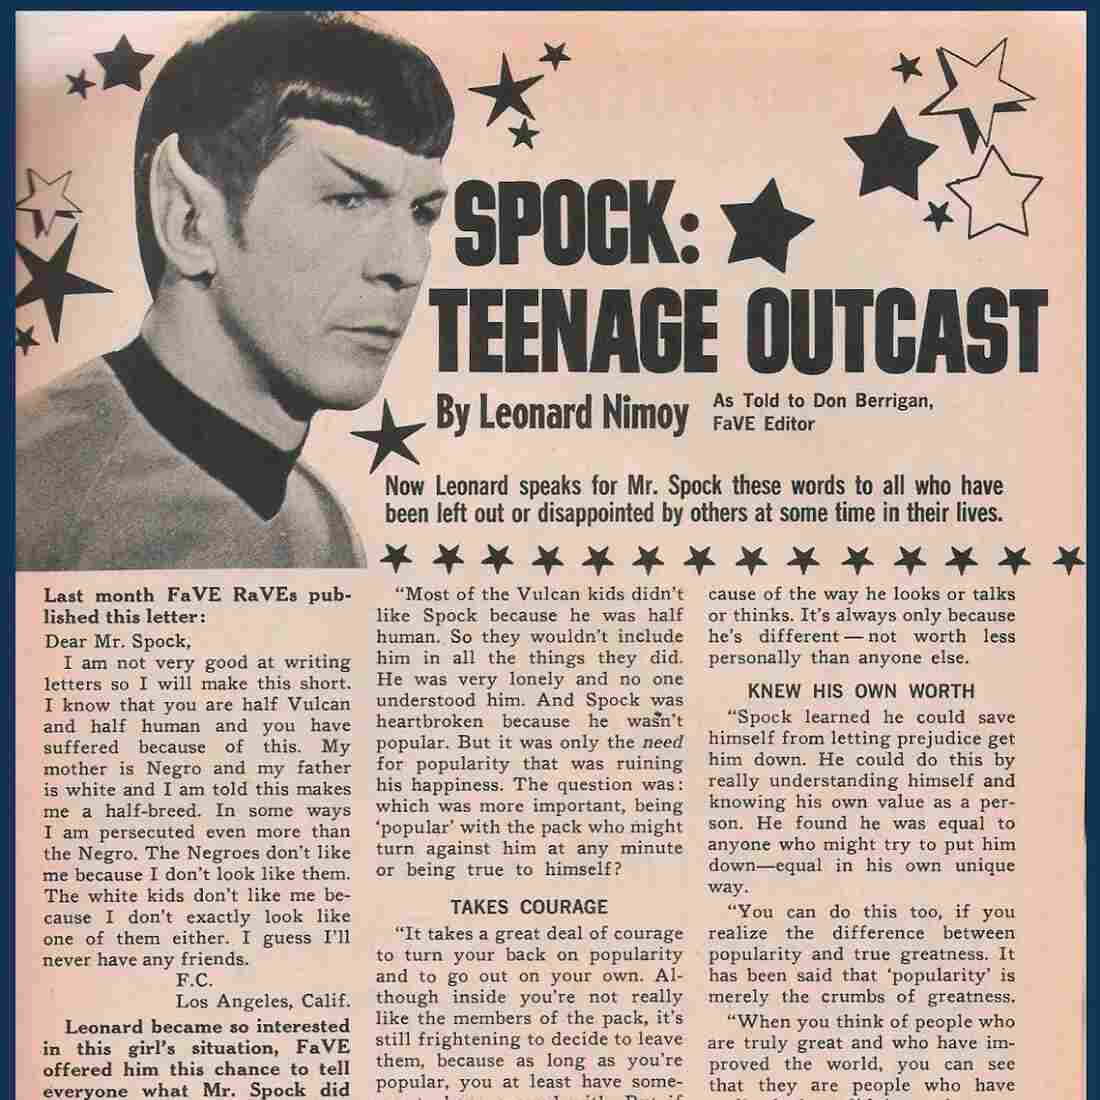 Leonard Nimoy's Advice To A Biracial Girl In 1968